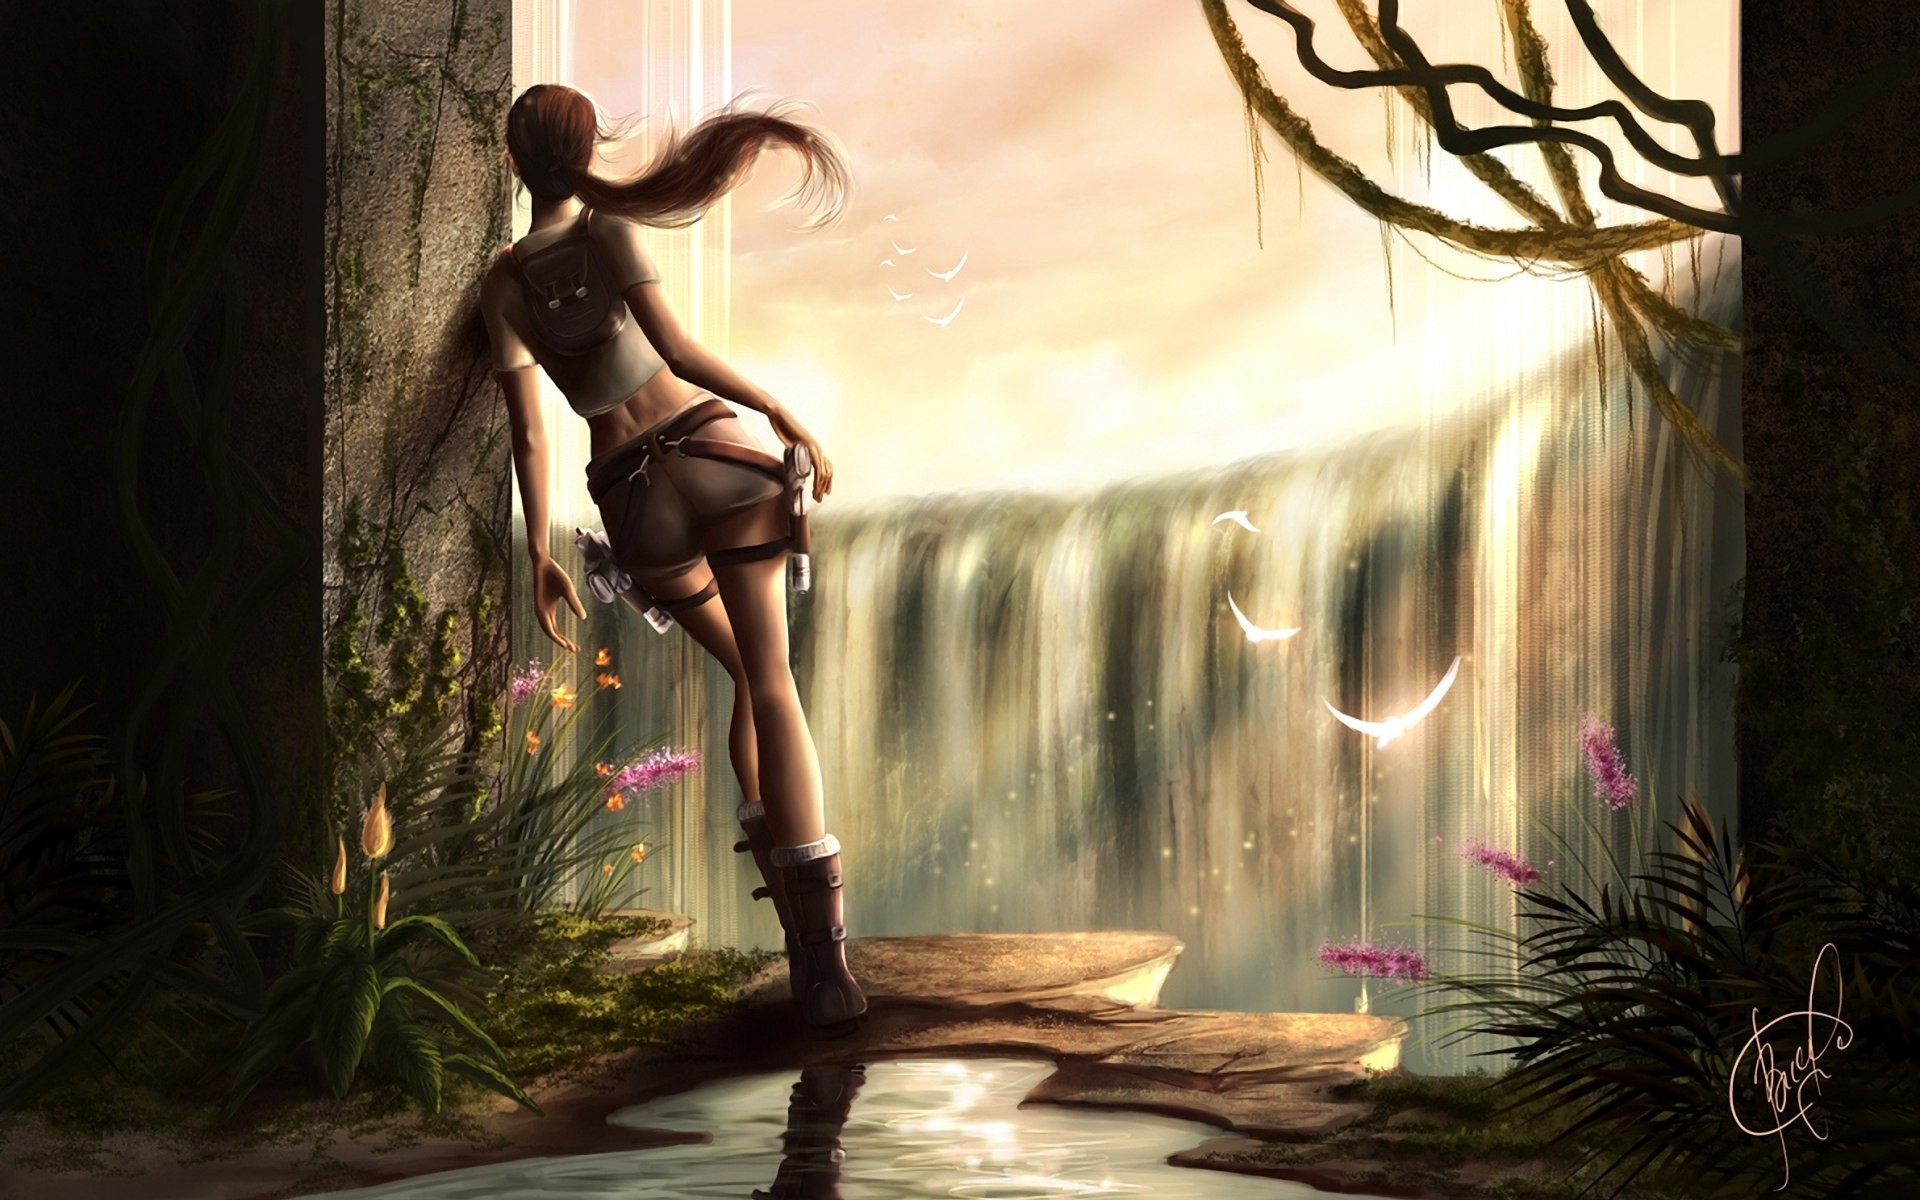 General 1920x1200 Tomb Raider Lara Croft skinny legs video games women